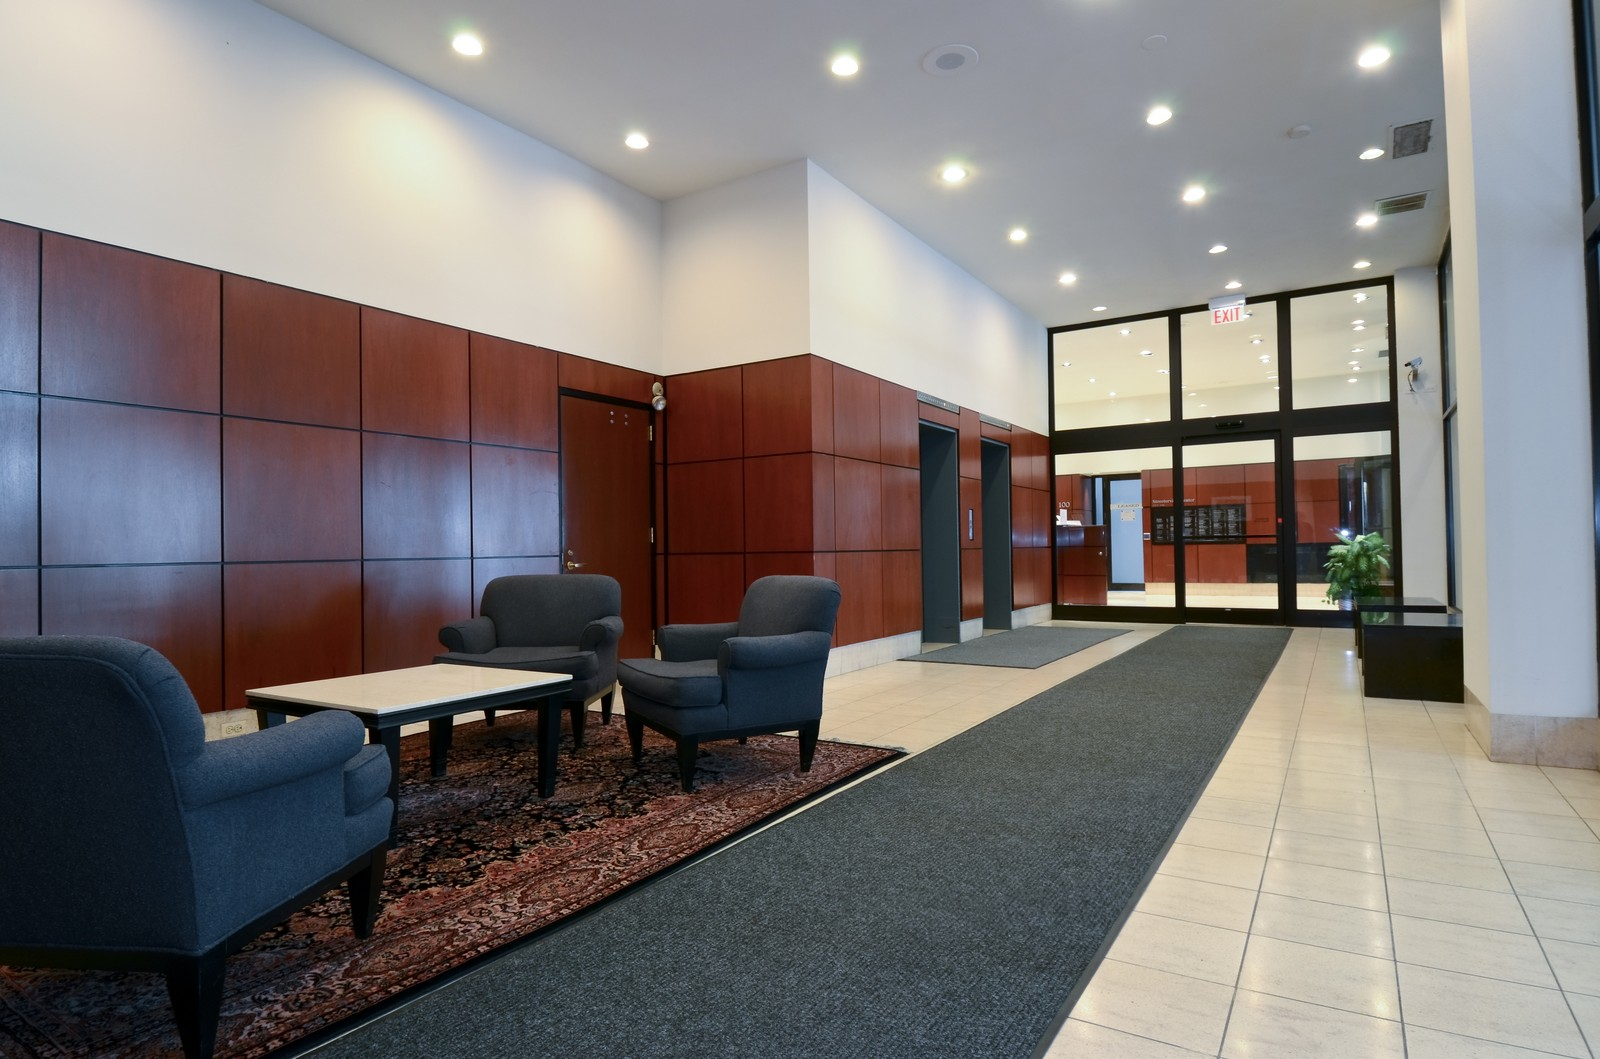 Real Estate Photography - 233 East Erie, 2304, Chicago, IL, 60611 - Lobby